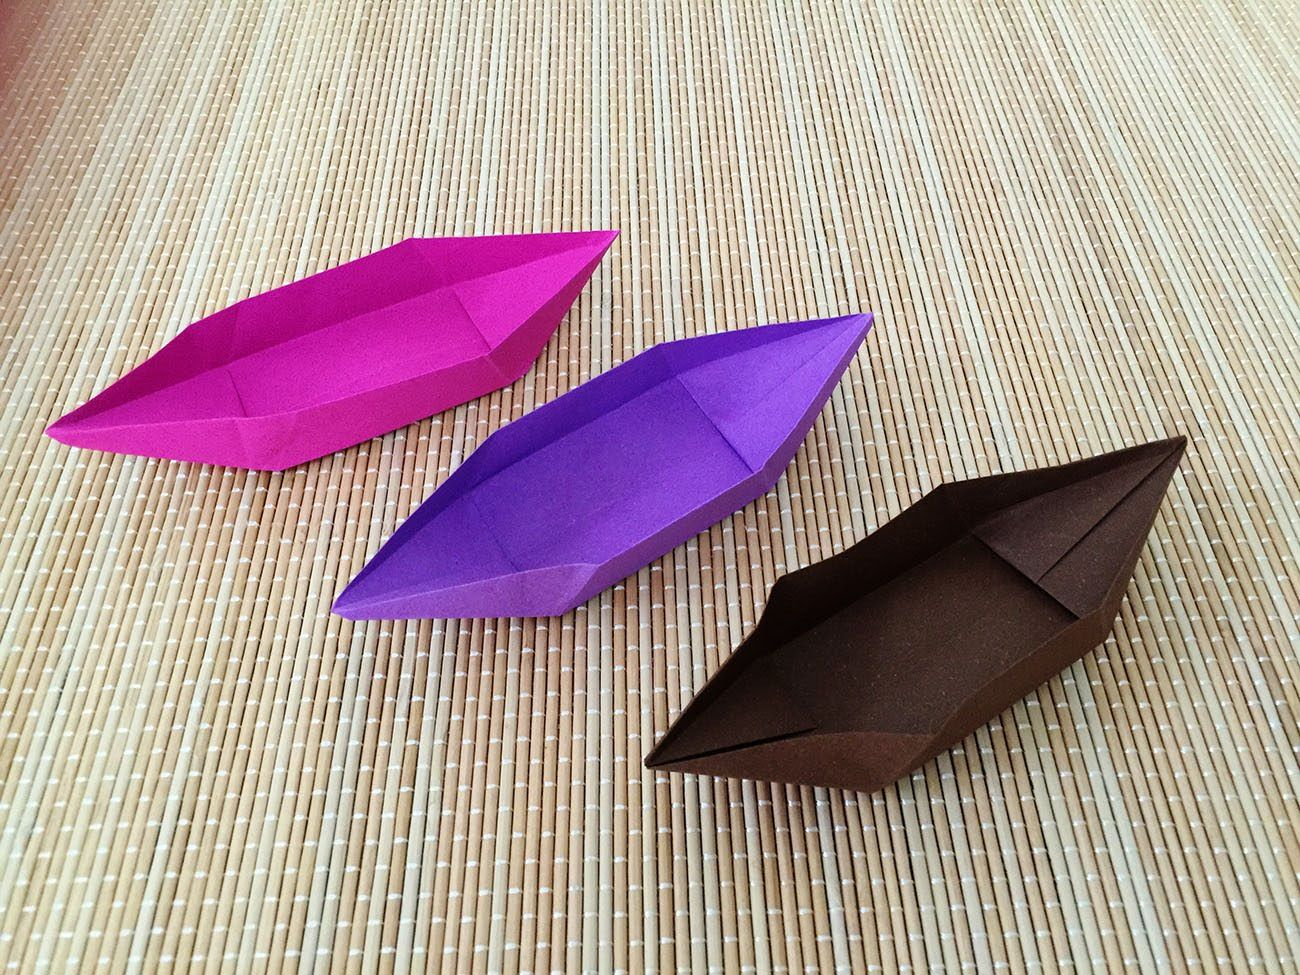 how to fold a paper boat canoe canoe stem activity make a paper boat origami canoe. Black Bedroom Furniture Sets. Home Design Ideas